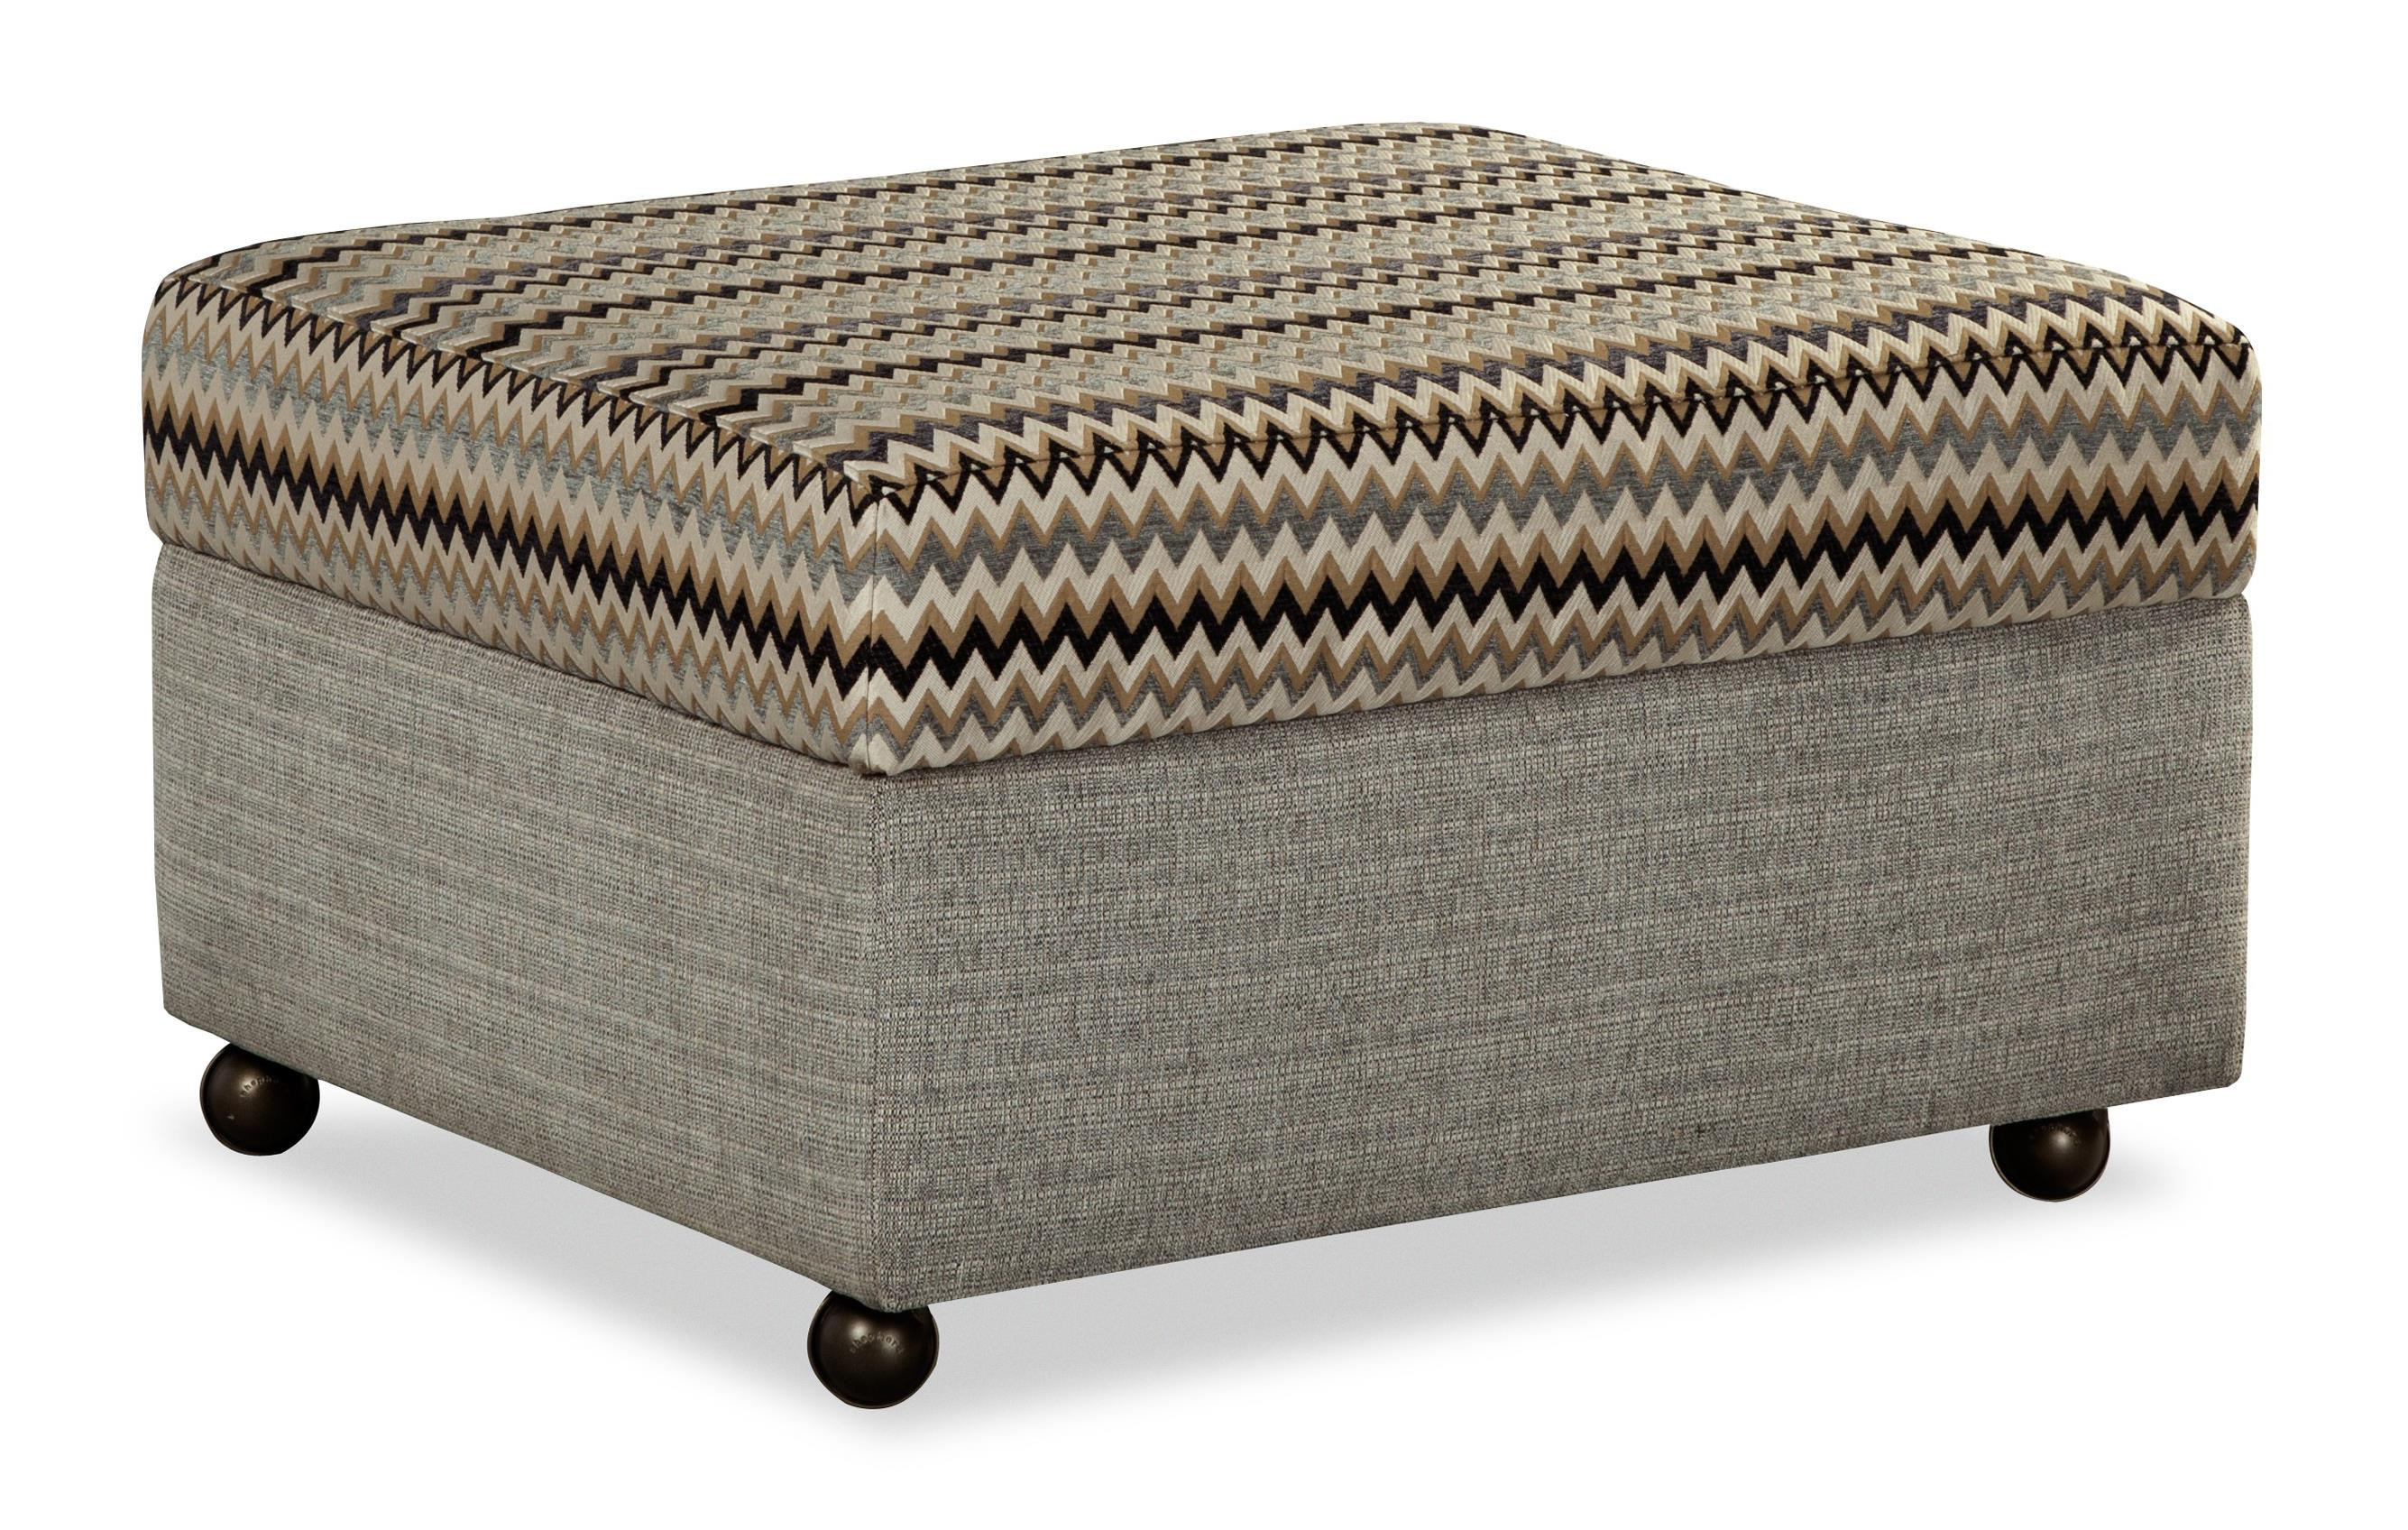 Charming Customizable Lift Top Storage Ottoman With Casters